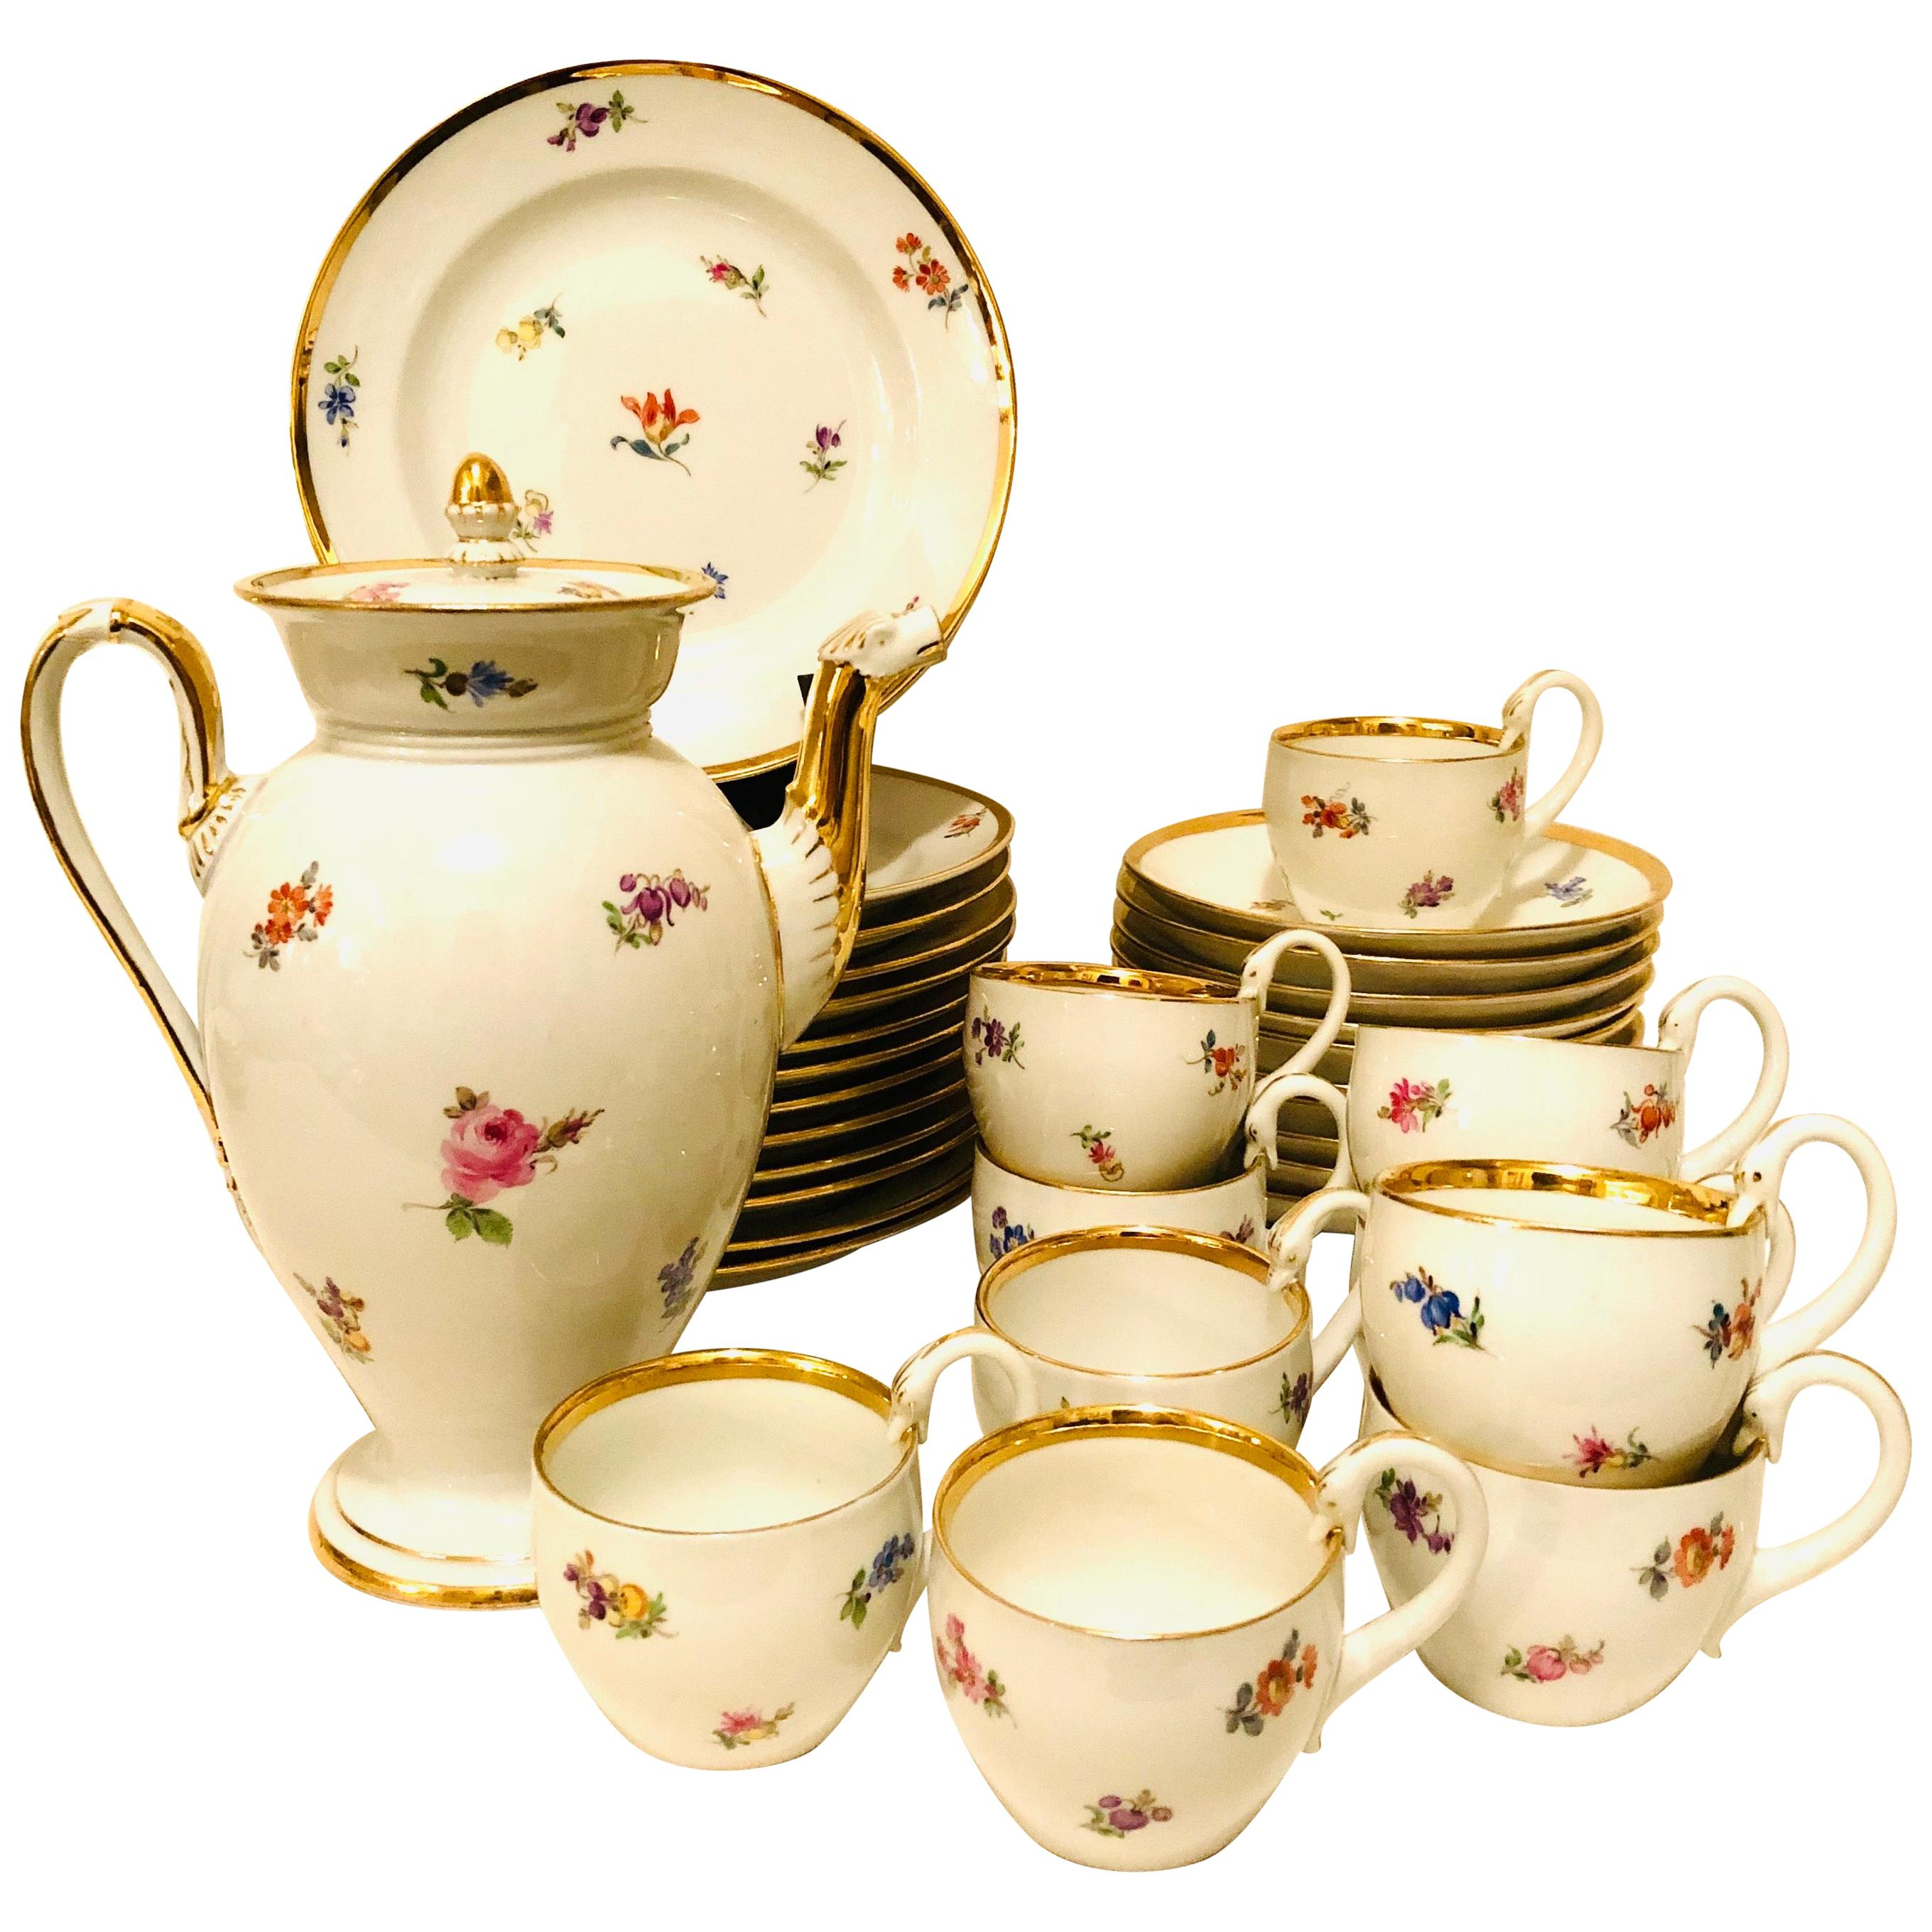 Meissen Streublumen Tea Set for 10 with Cups and Saucers, Cake Plates and Teapot